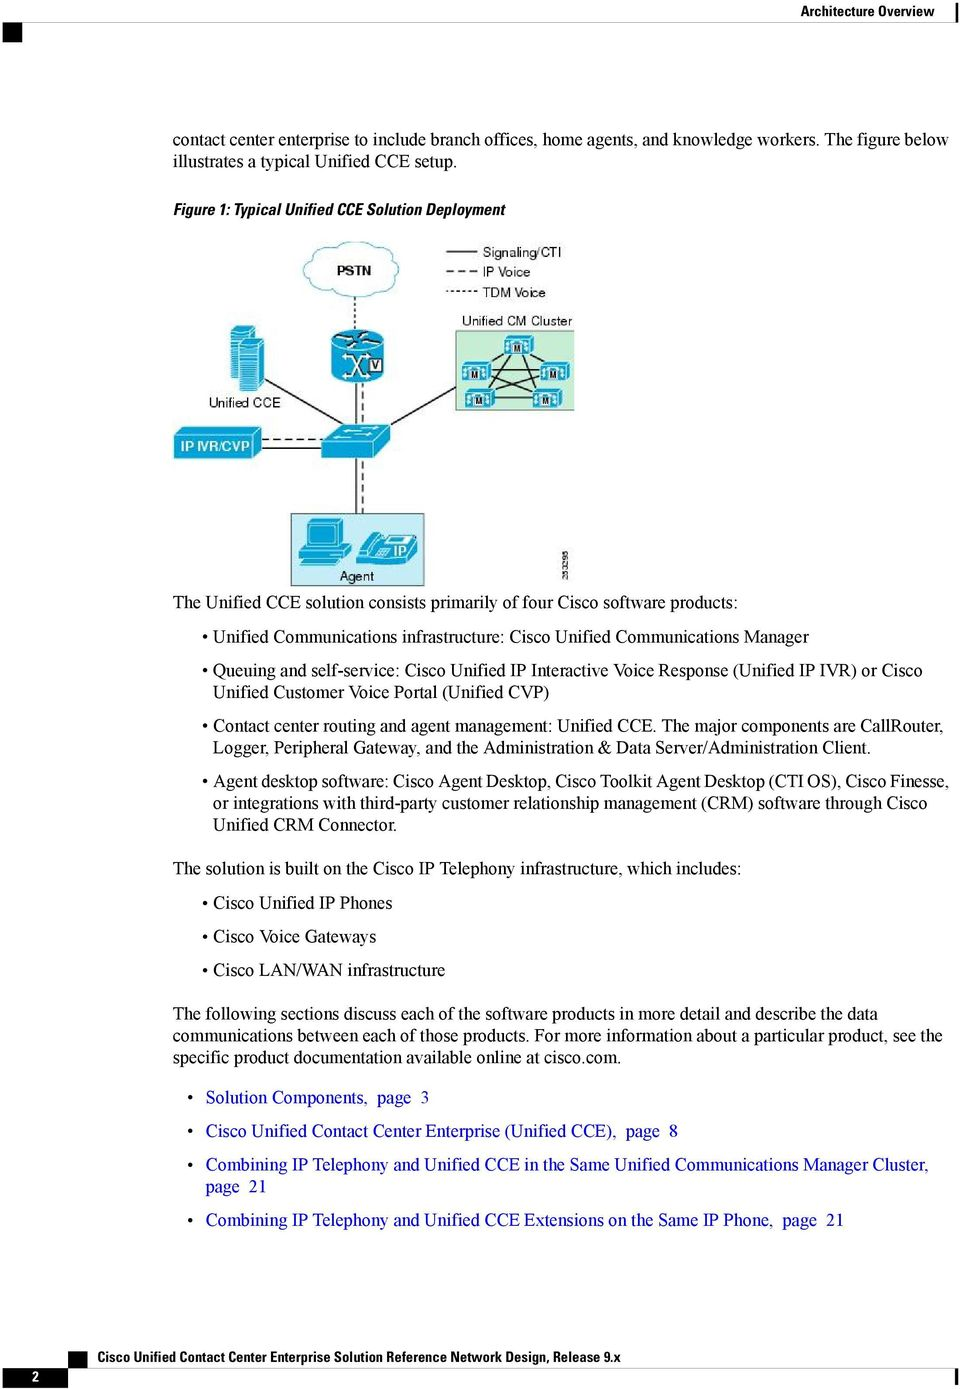 Cisco Unified Contact Center Enterprise Solution Reference Network